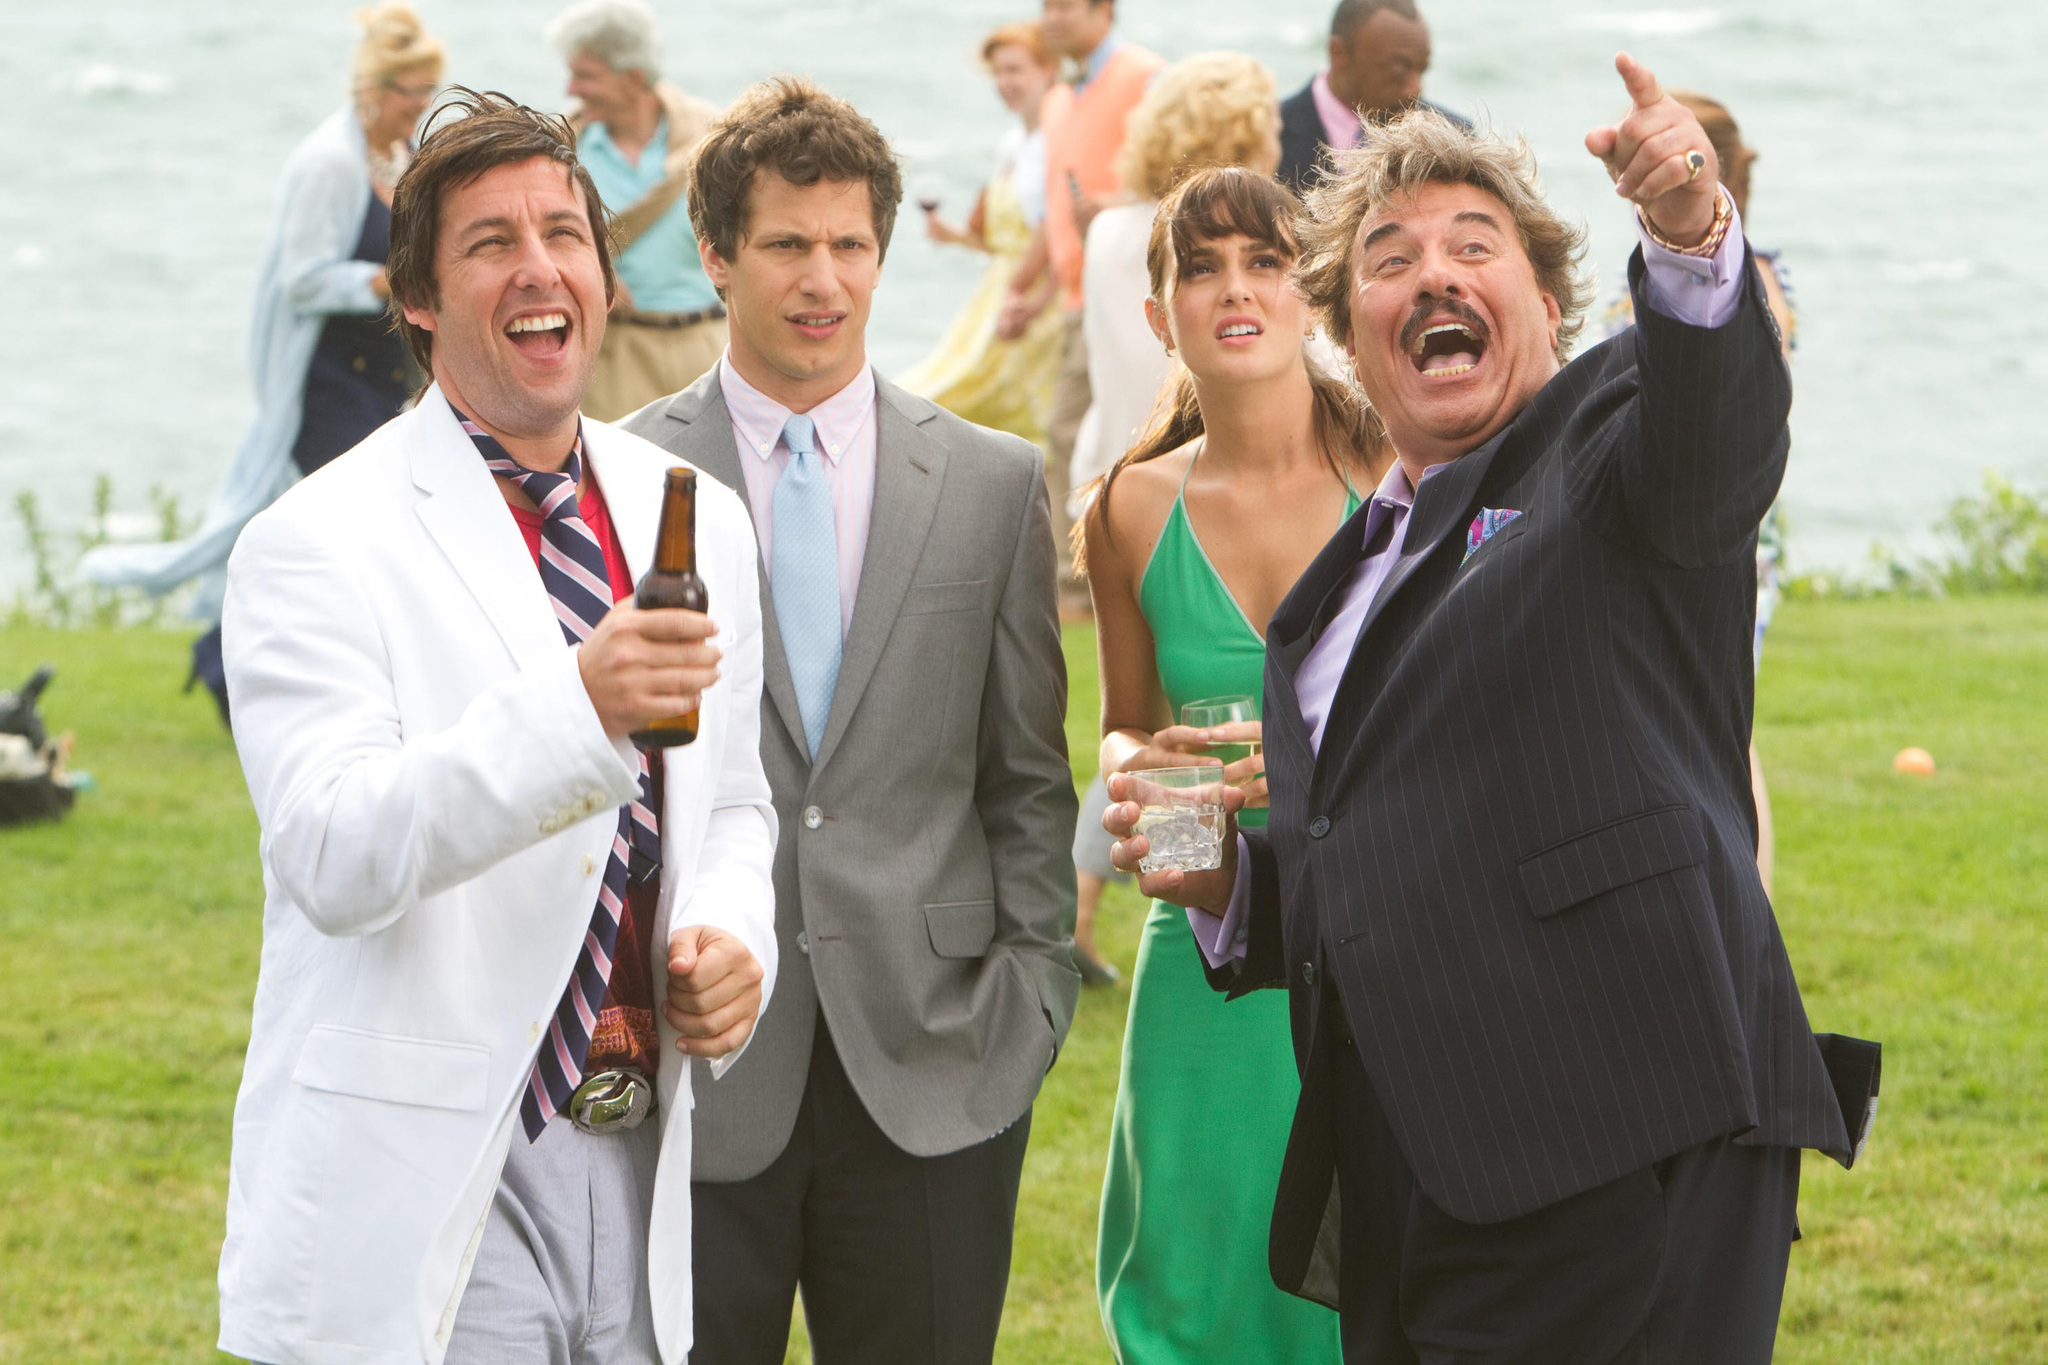 Adam Sandler, Tony Orlando, Leighton Meester, and Andy Samberg in That's My Boy (2012)